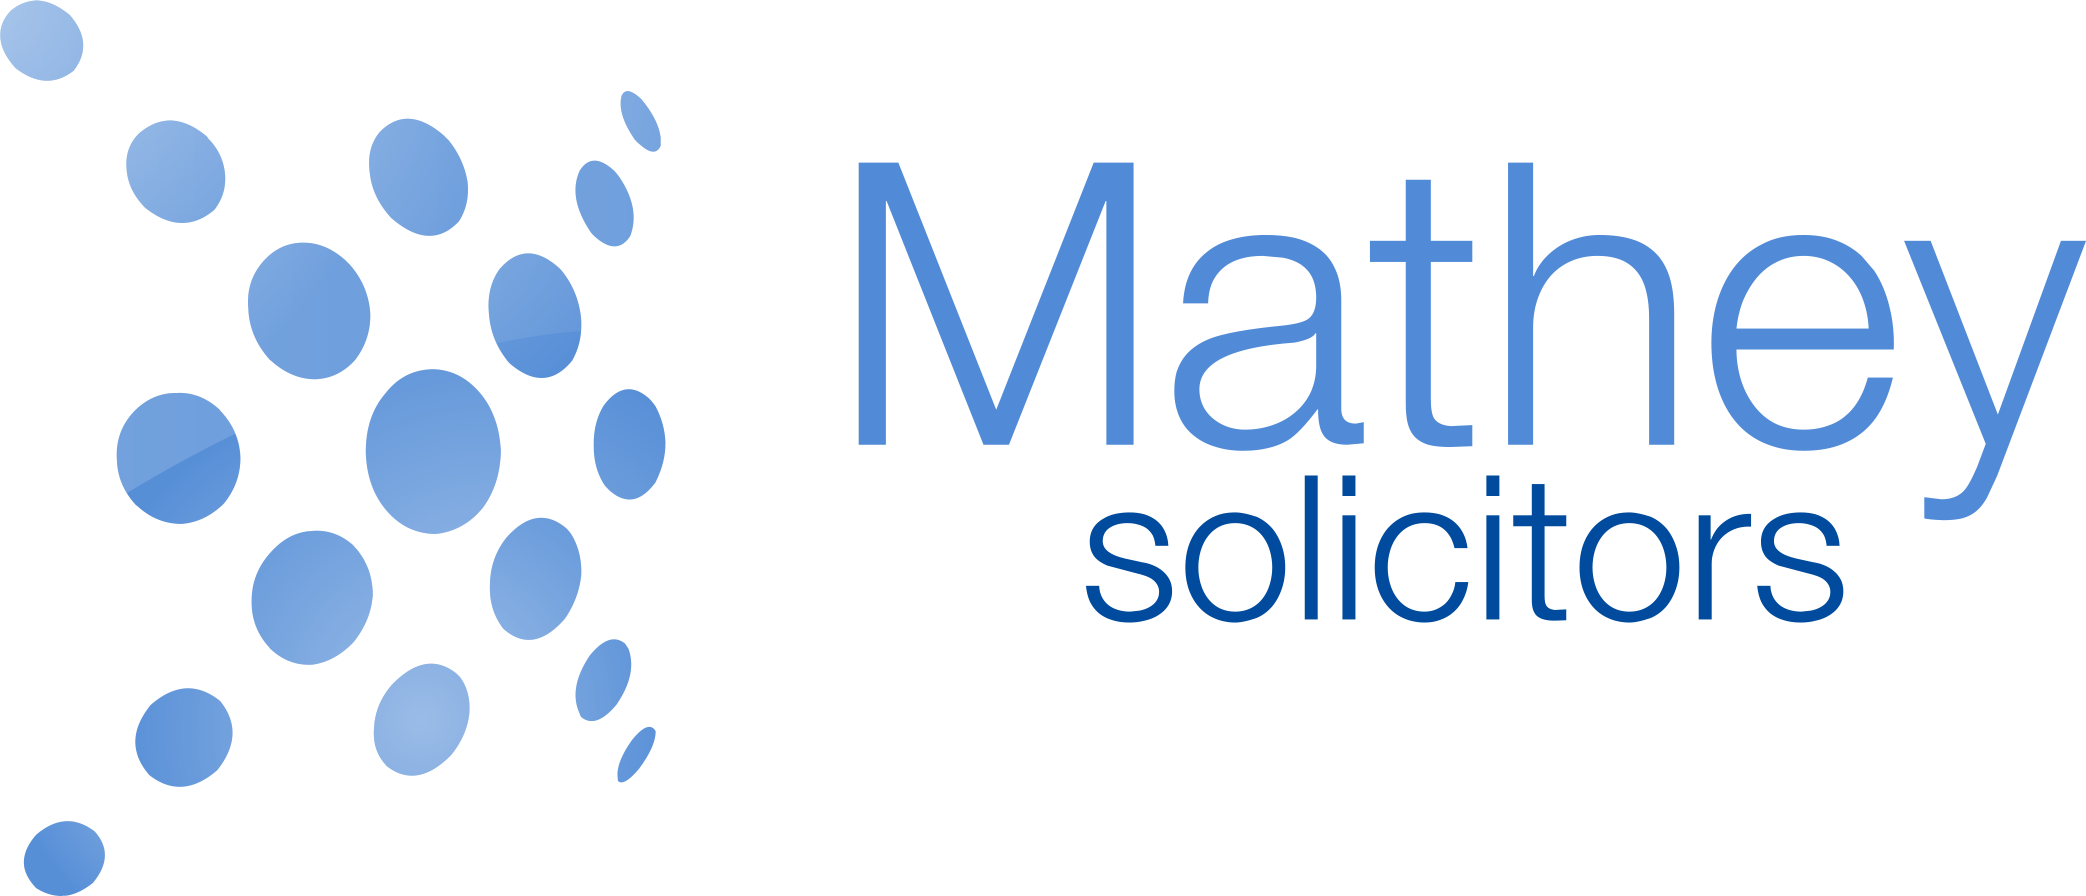 Mathey Soloicitors